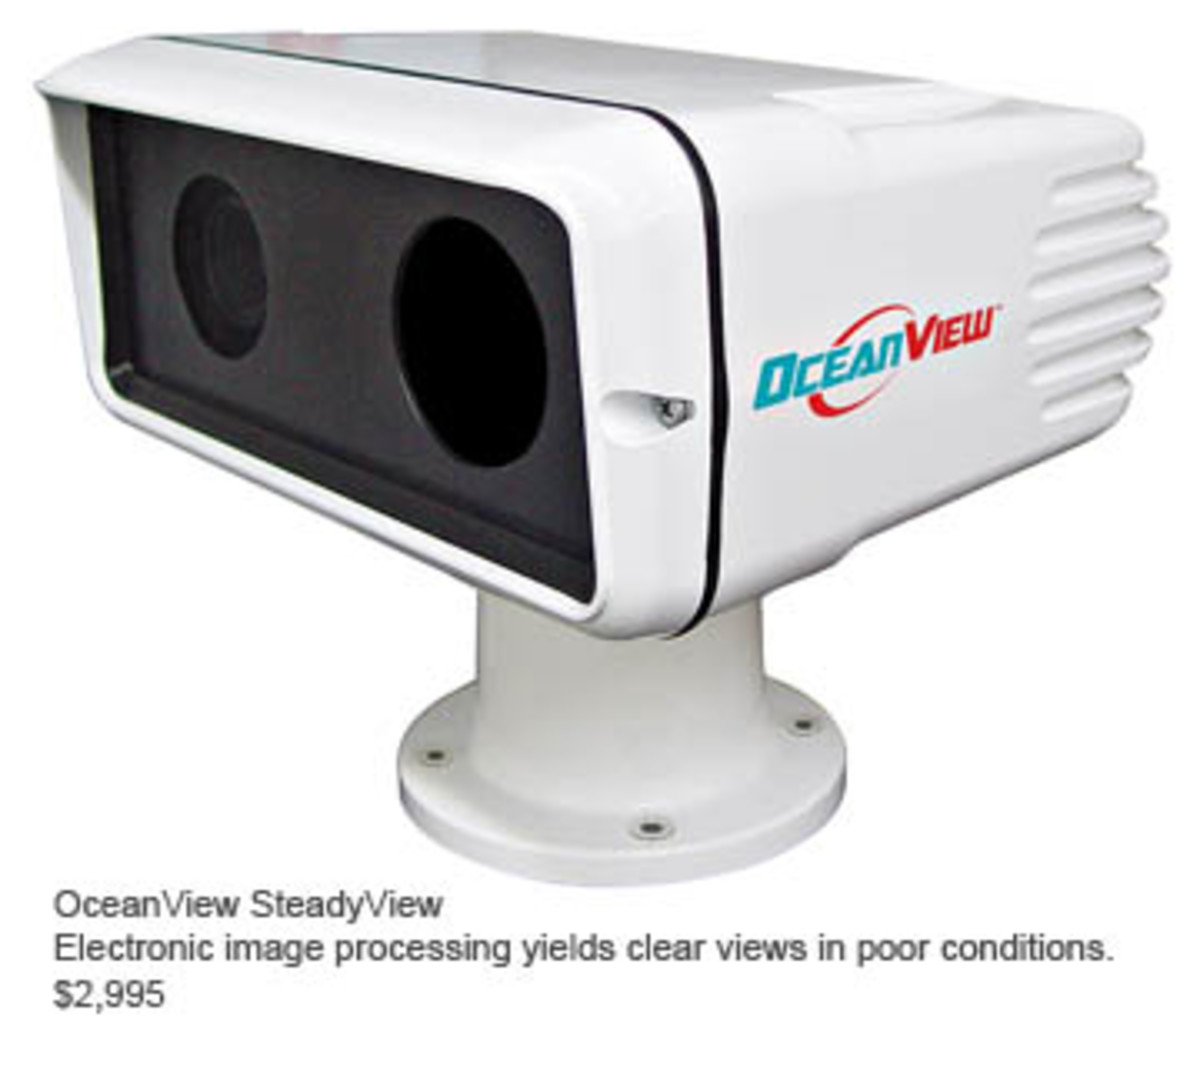 OceanView SteadyView: Electronic image processing yields clear views in poor conditions.